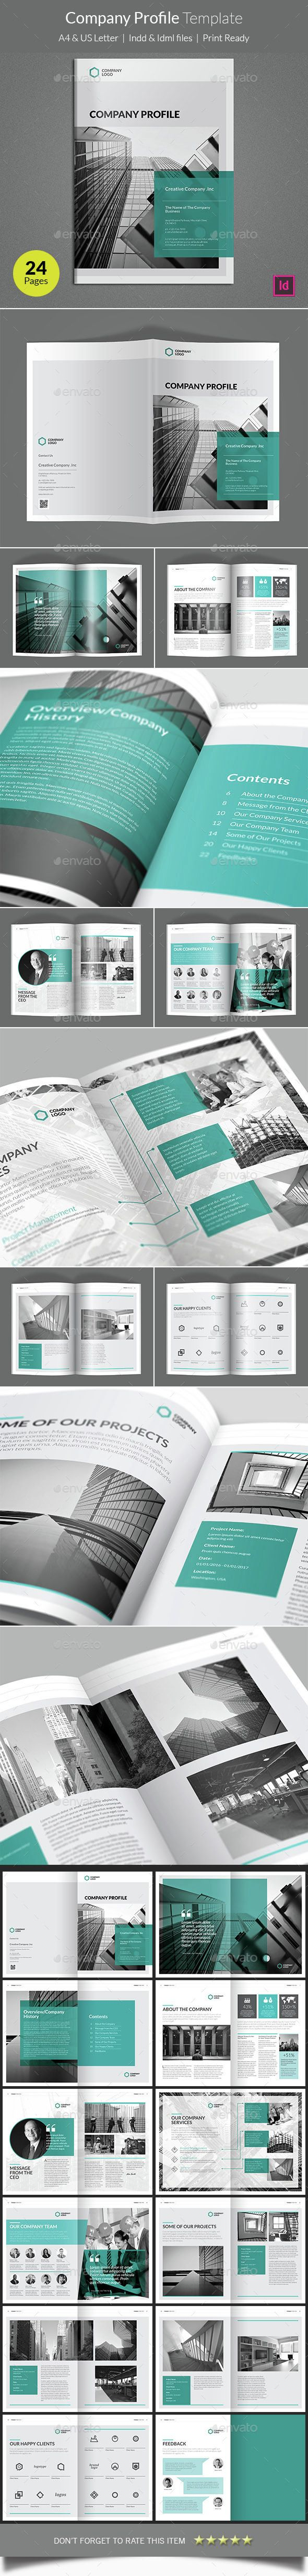 Company Profile Brochure Template InDesign INDD. Download here: http://graphicriver.net/item/company-profile-template/14848589?ref=ksioks